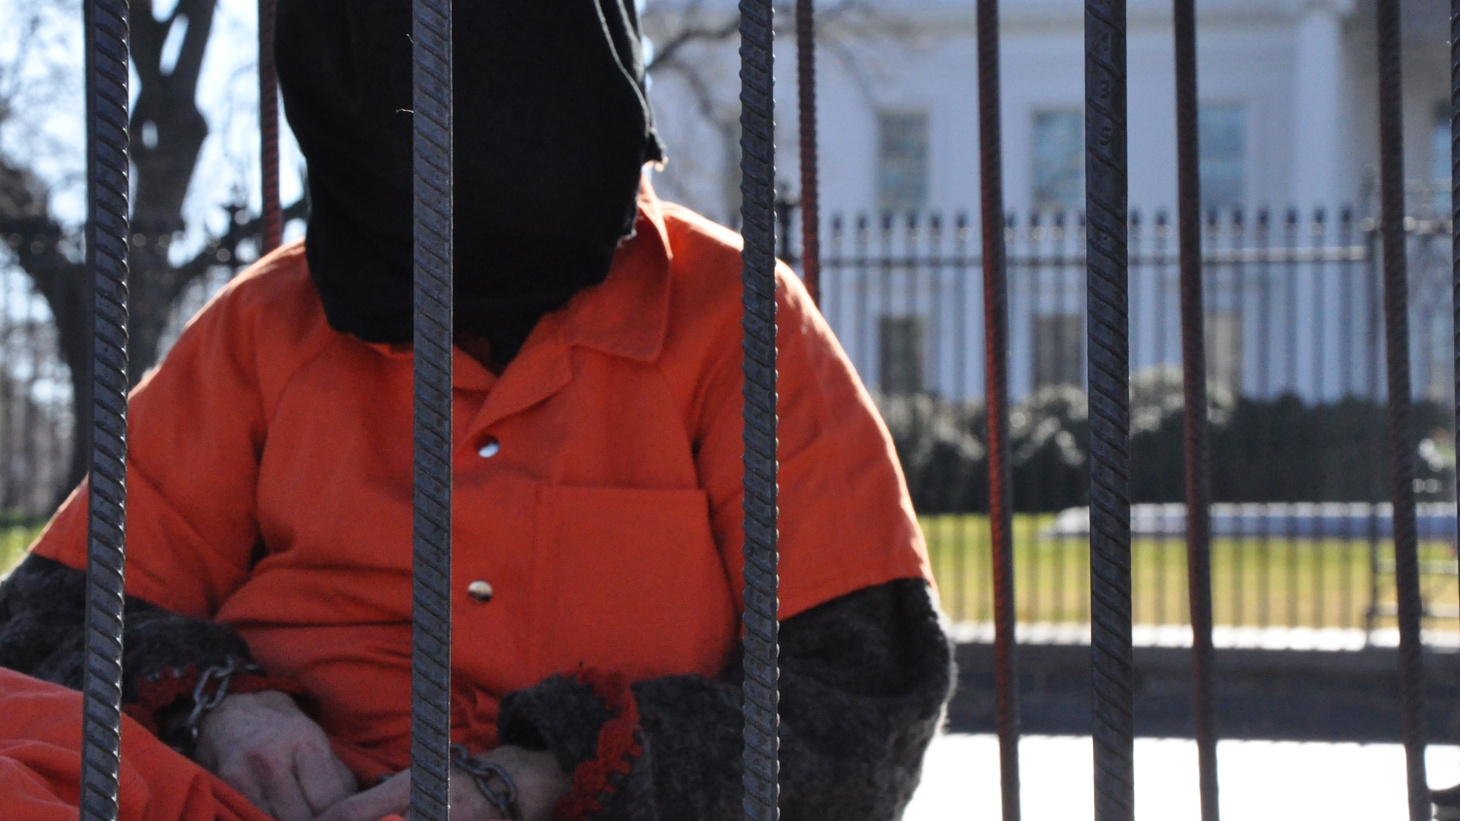 Congress says the inmates left at Guantánamo Bay are too dangerous to allow on American soil—even in prisons as secure as the Gulag. But President Obama made a campaign promise to shut Guantánamo down. Will that lead to a constitutional battle with political implications for next year's presidential campaign?